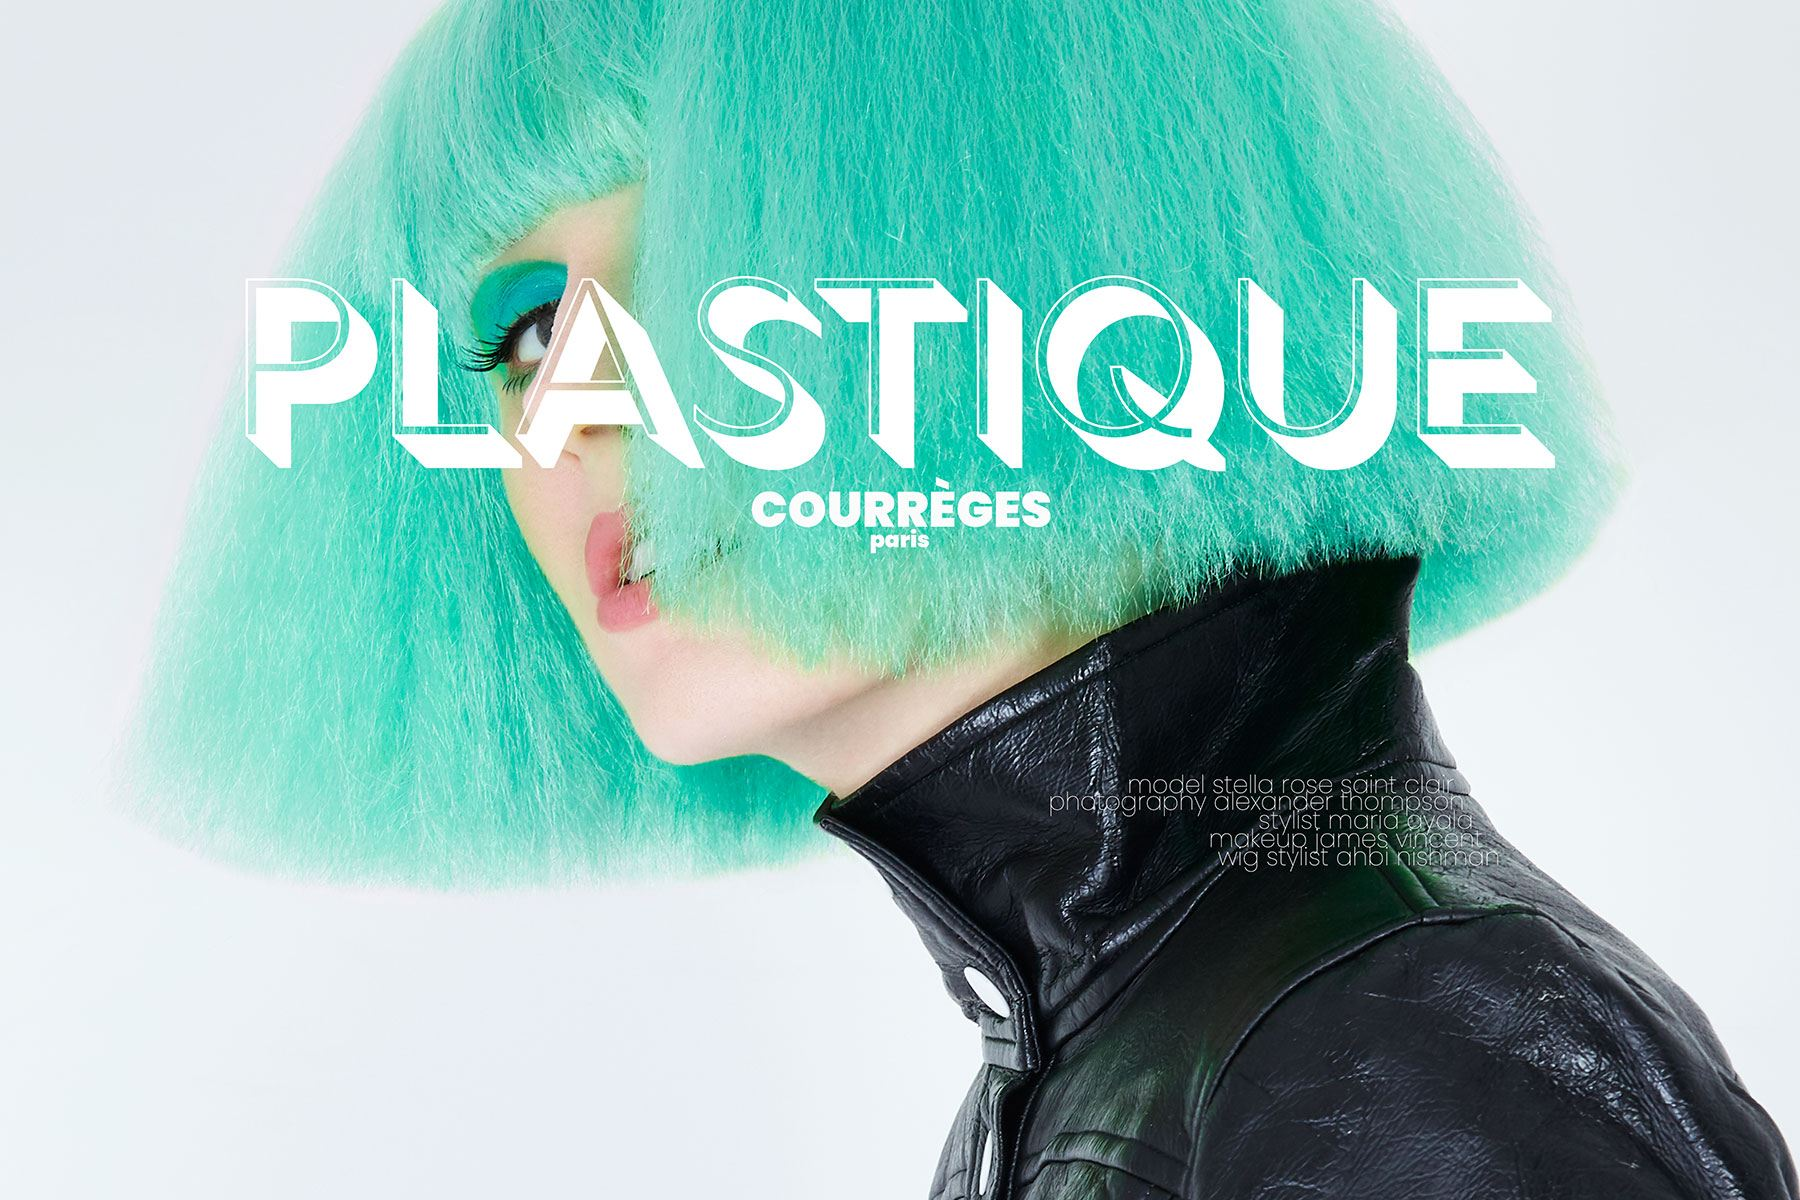 Plastique Courrèges starring model Stella Rose Saint Clair. Photographed by Alexander Thompson for Ponyboy magazine New York.